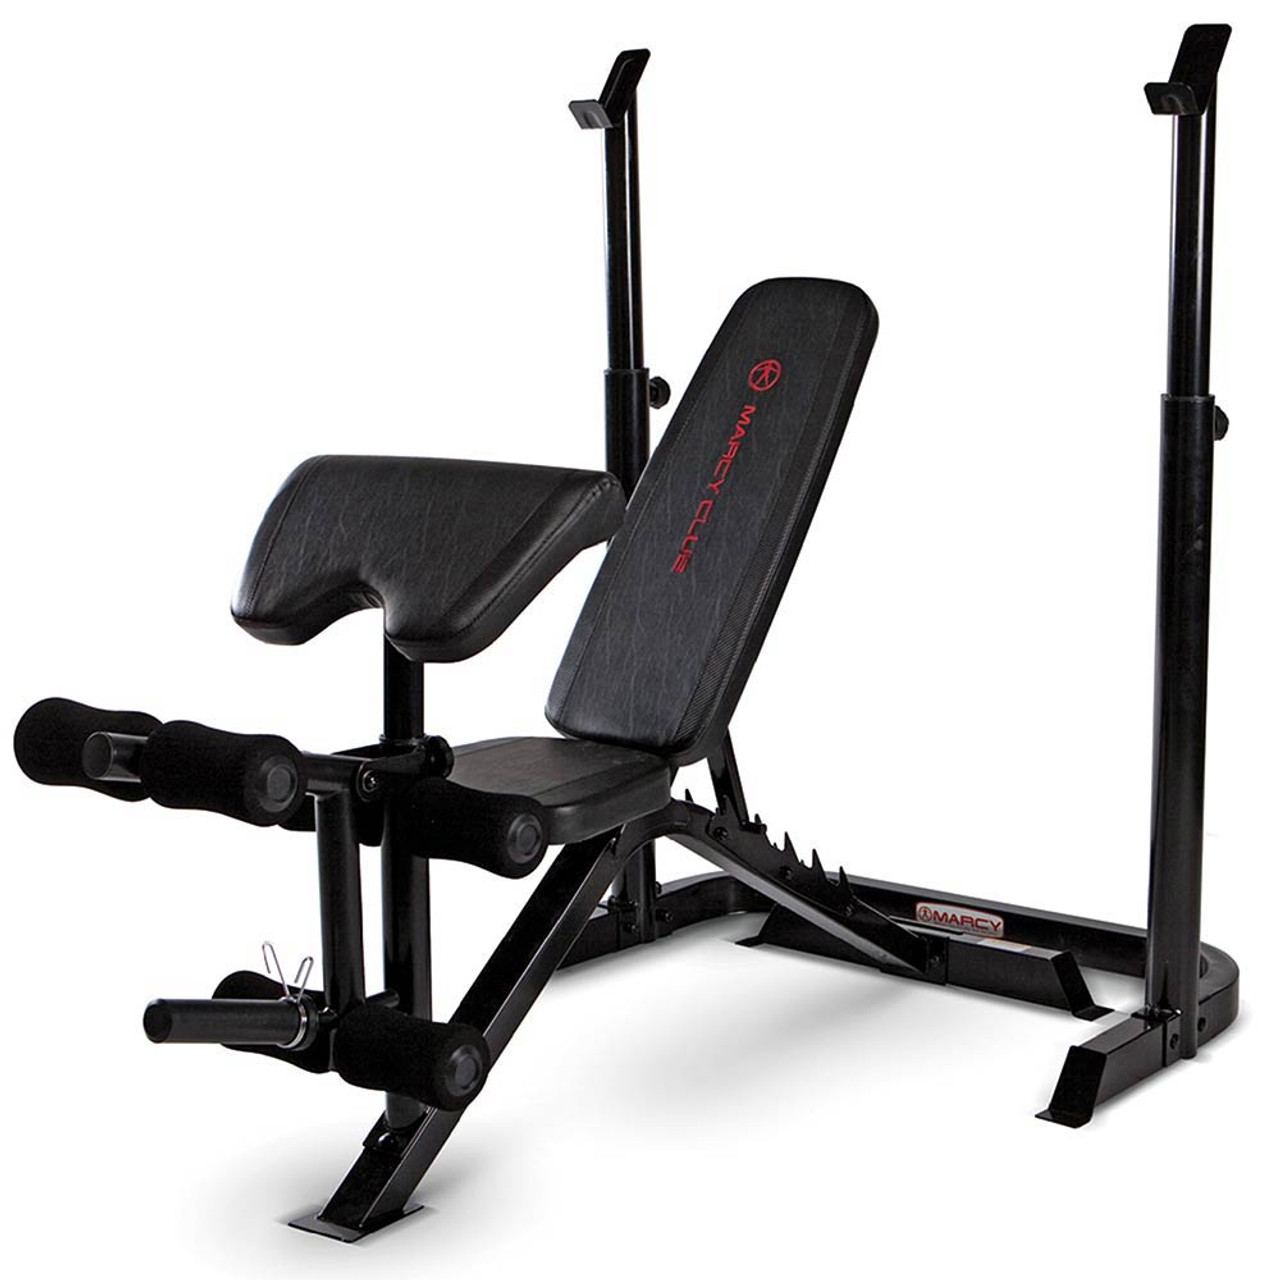 The Marcy Club Deluxe Mid Size Bench MKB-869 is essential for creating the  best